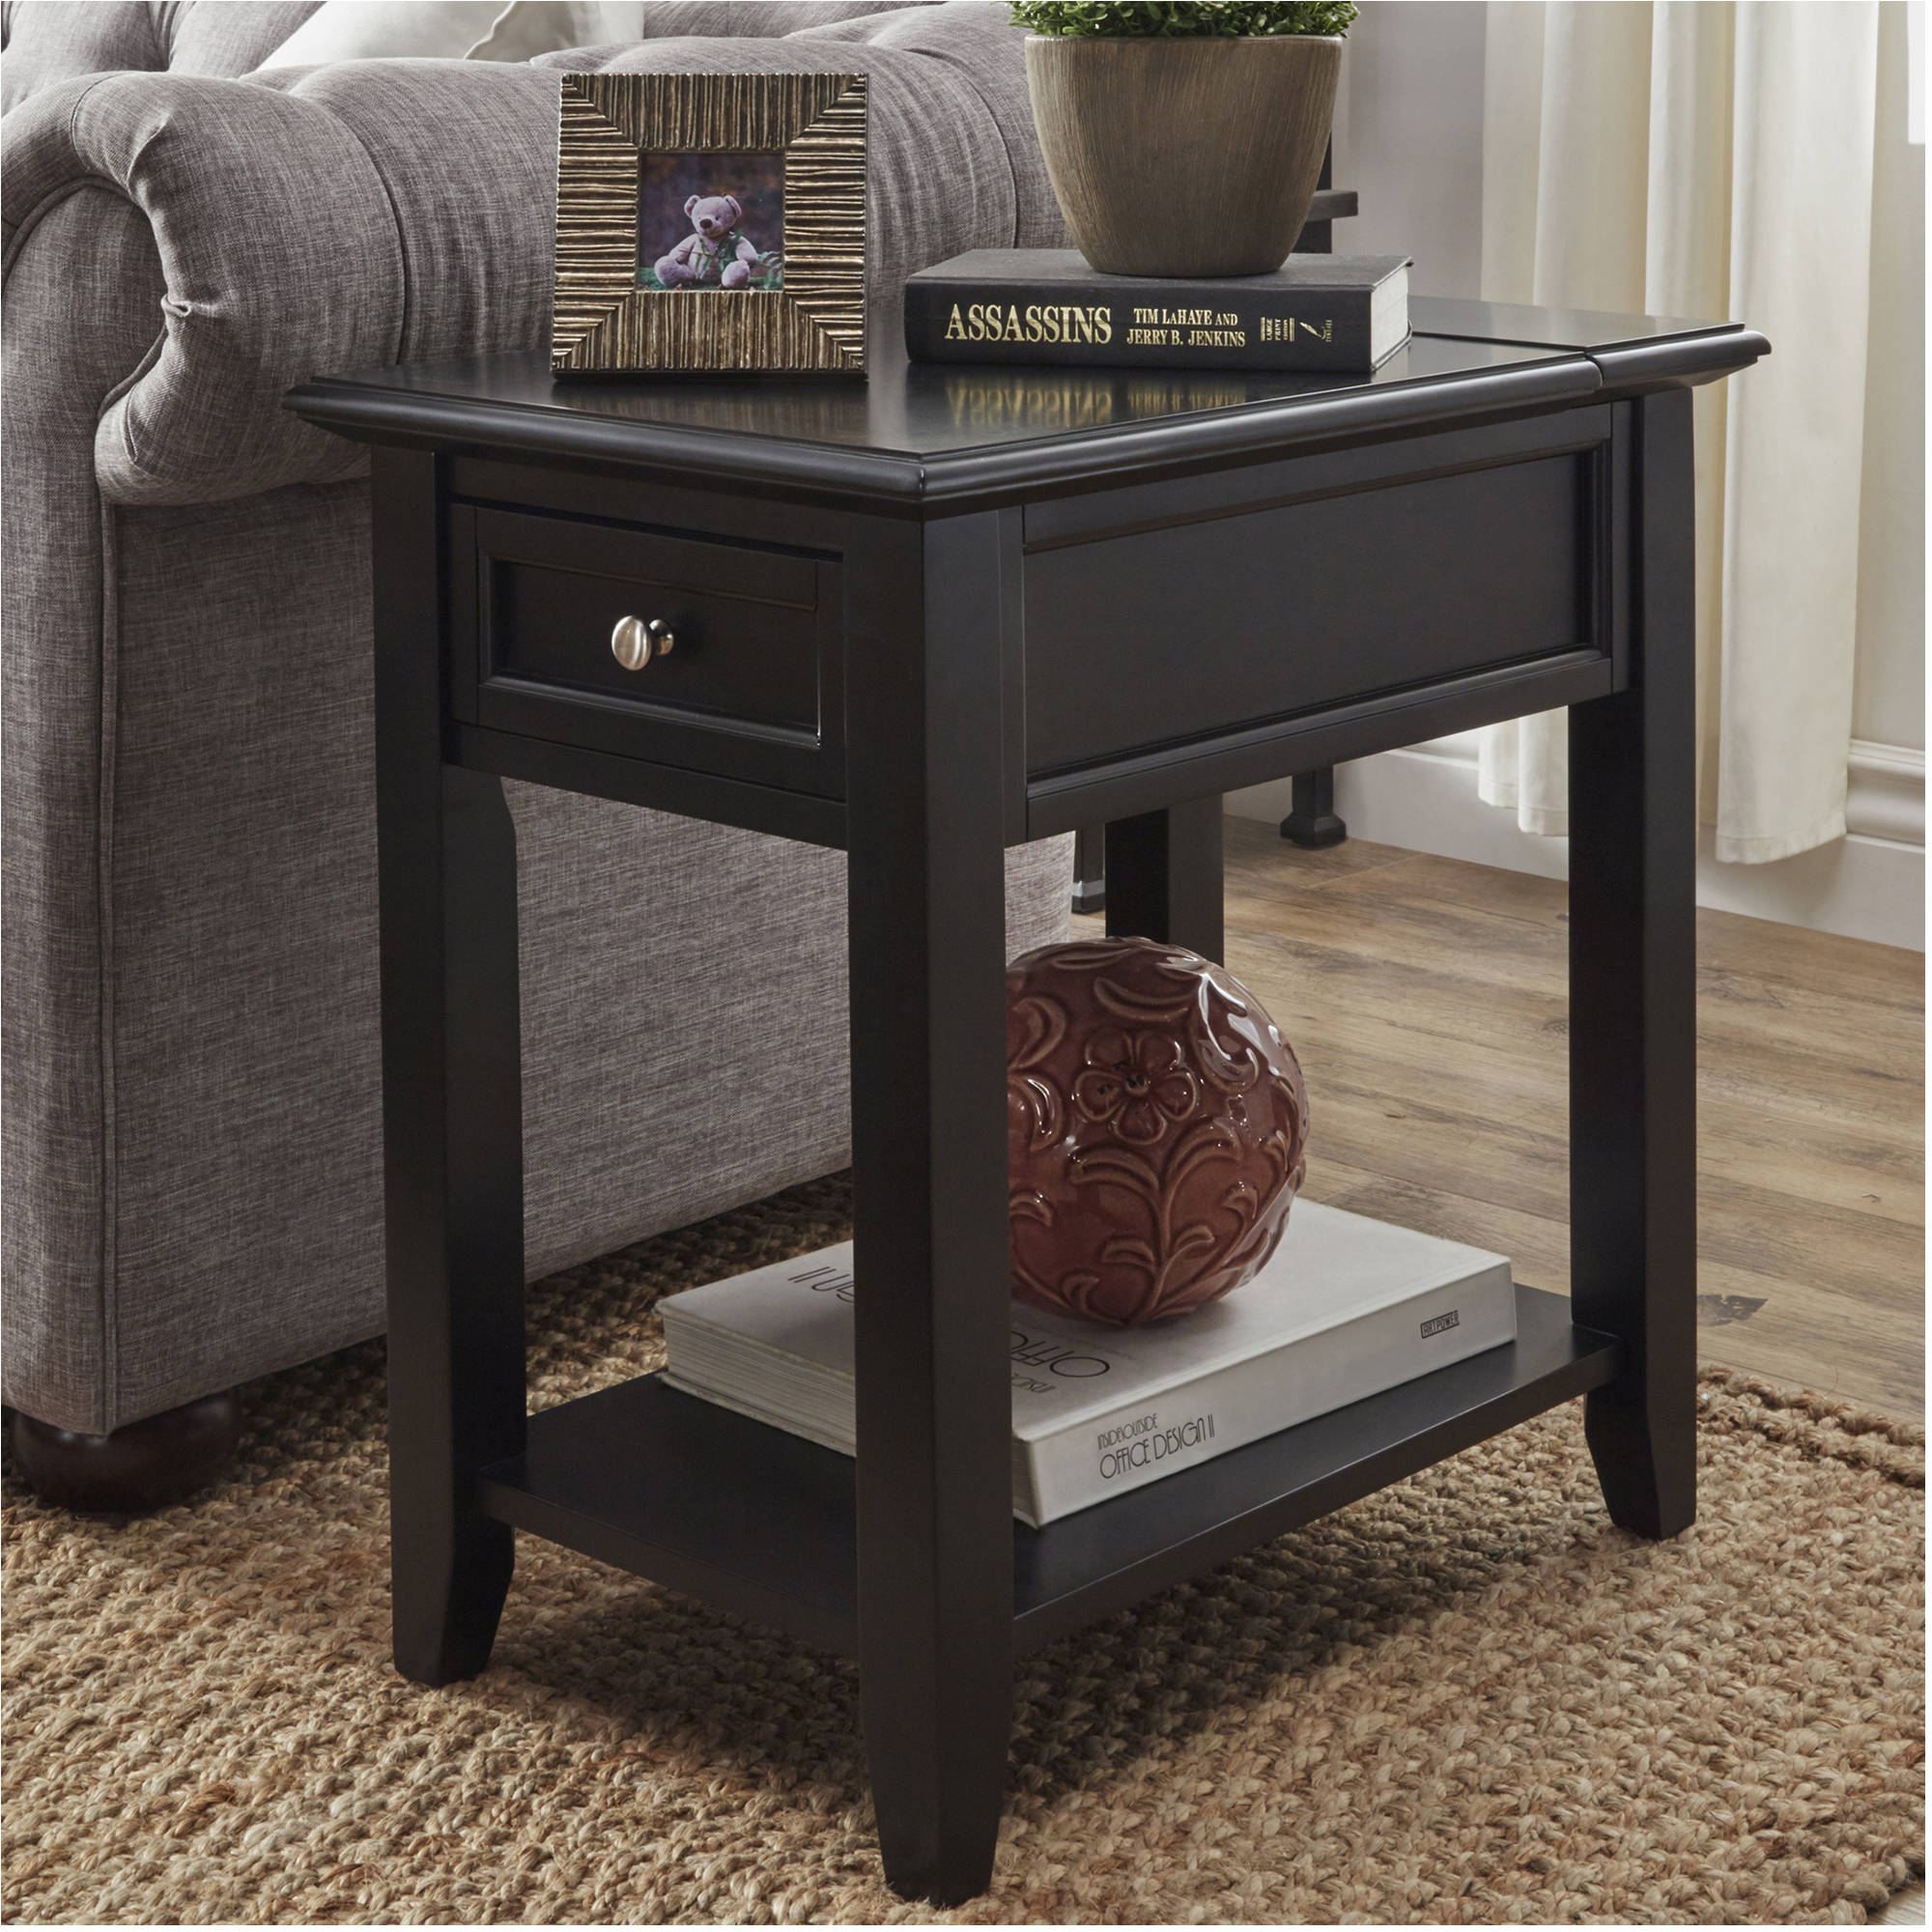 chelsea lane end table with power outlet, multiple colors